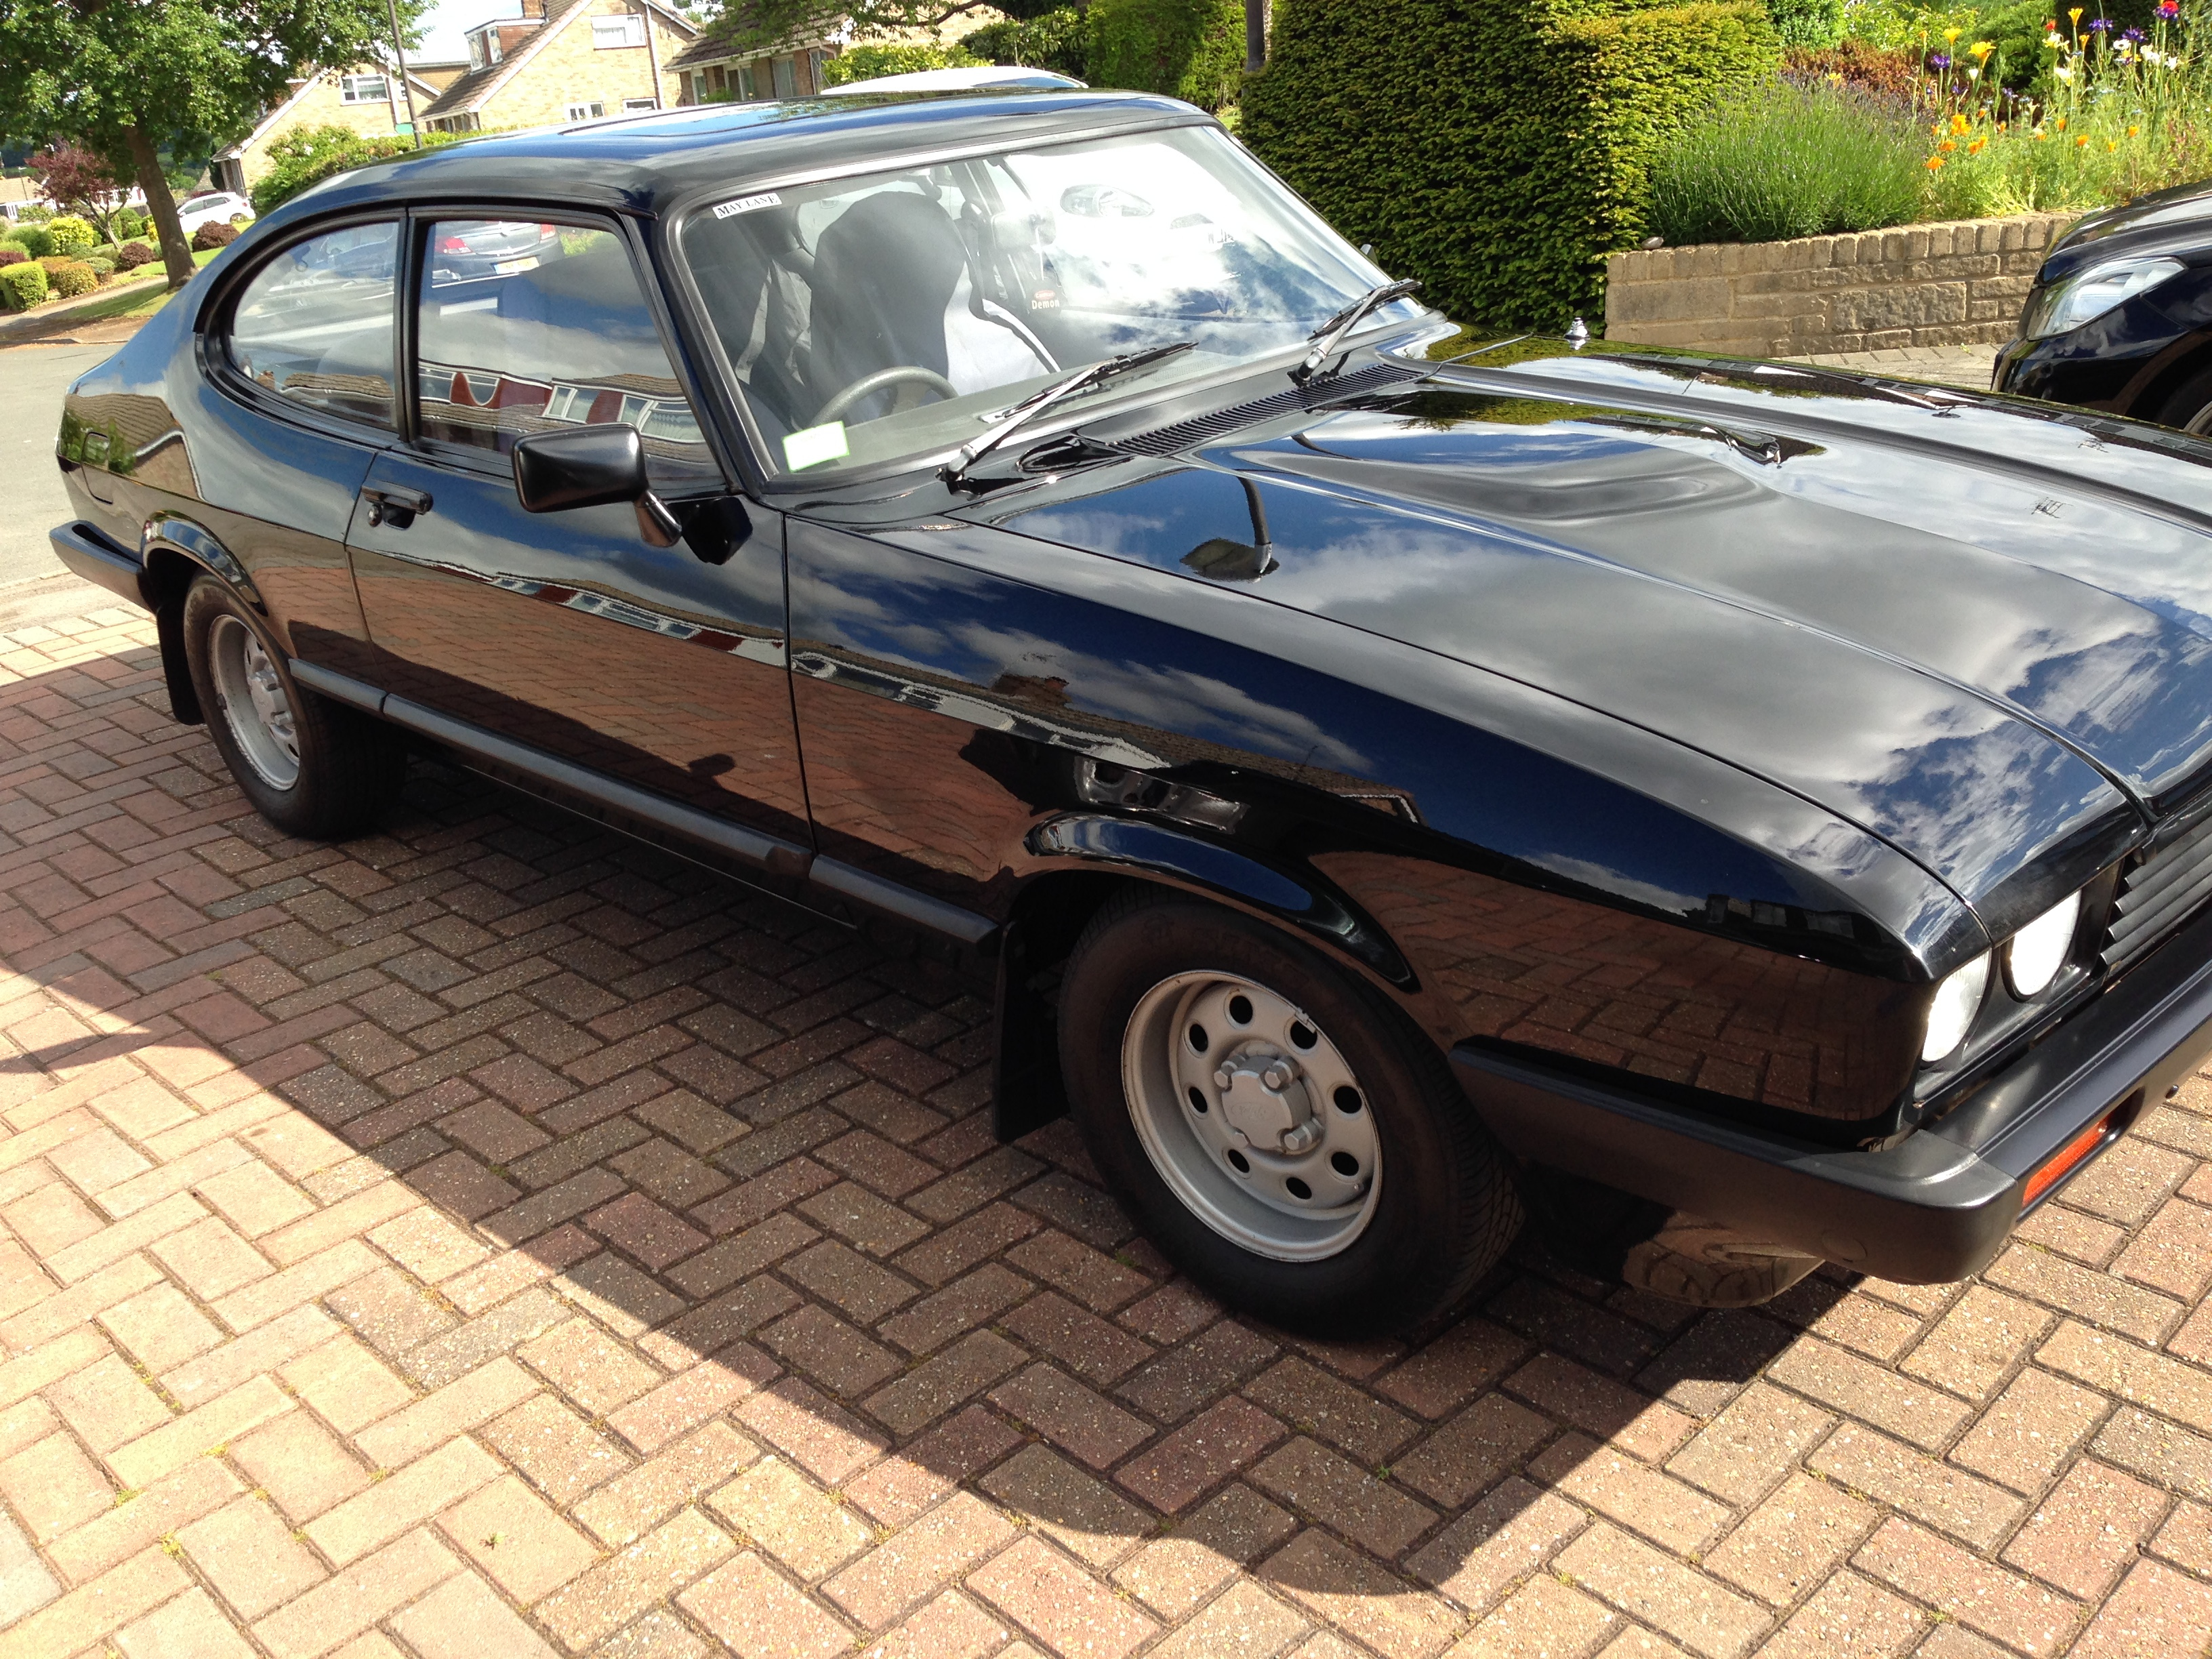 Stephen Harper says he will never sell his beloved 1984 Ford Capri